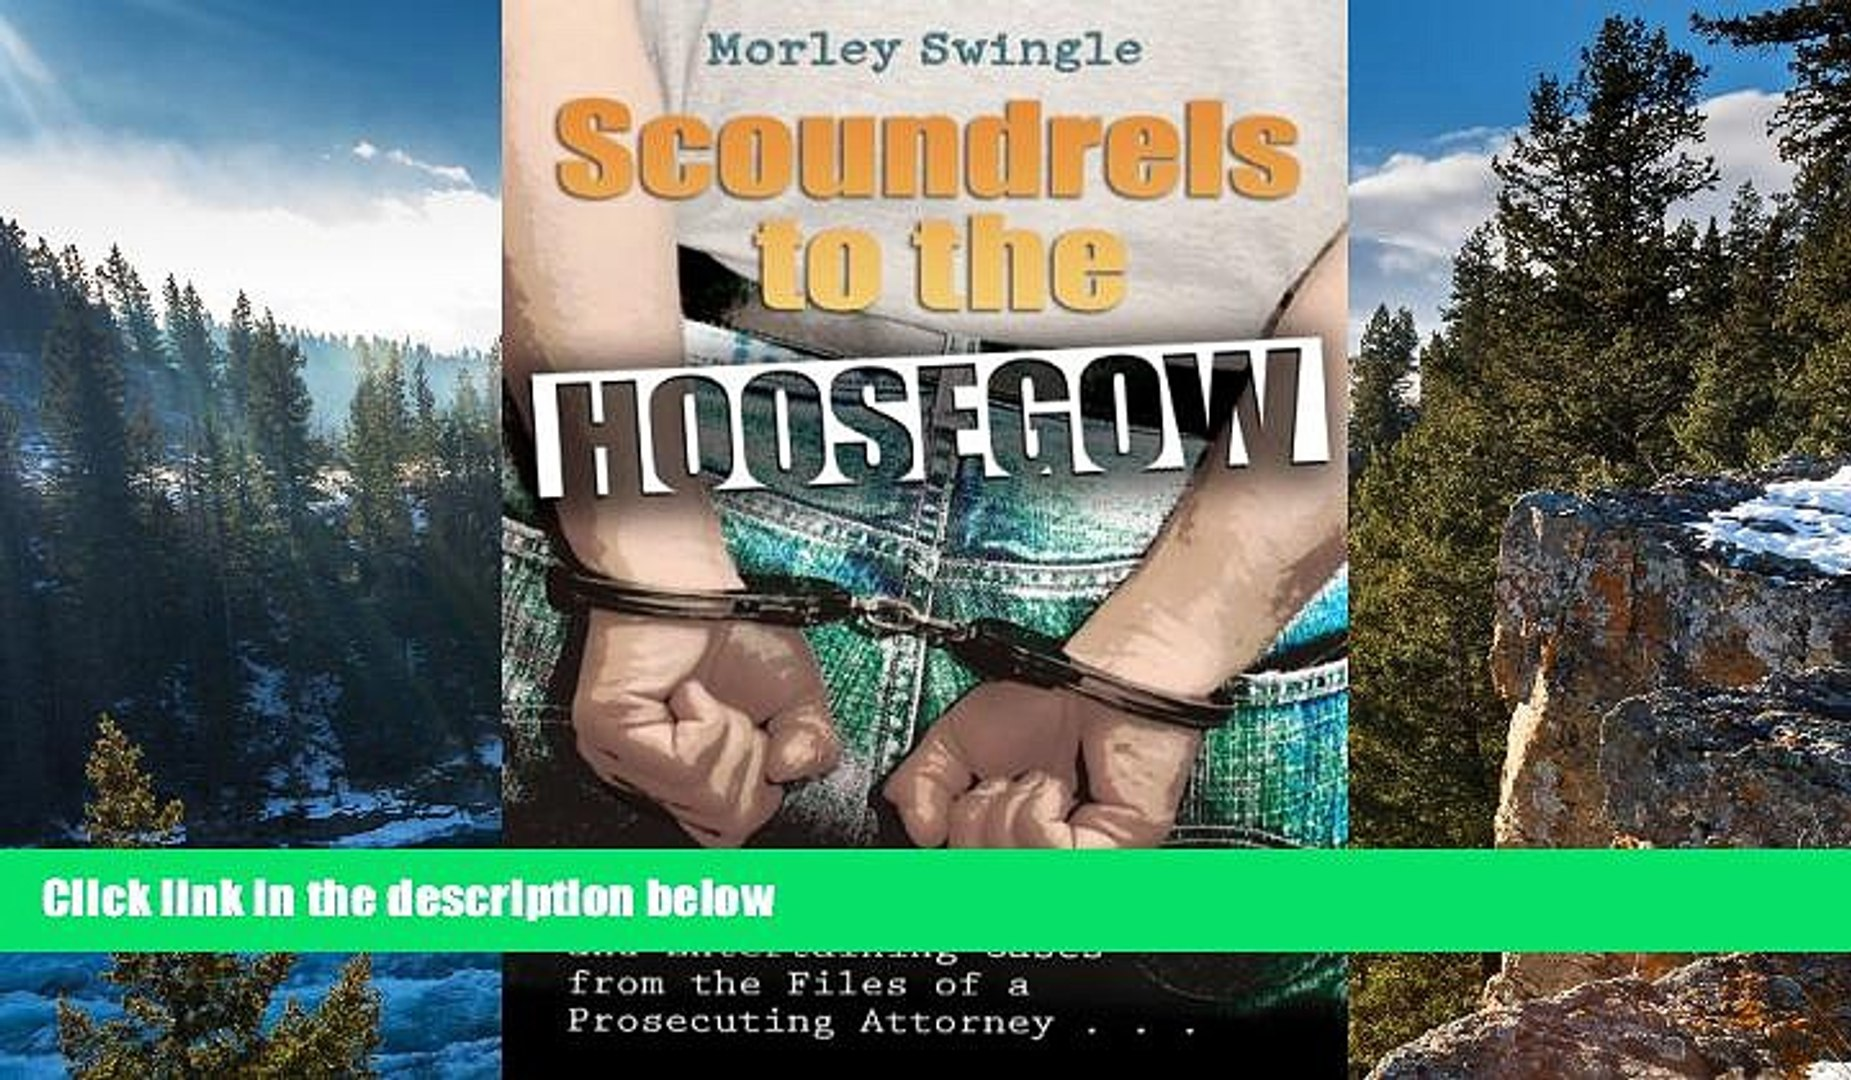 Deals in Books  Scoundrels to the Hoosegow: Perry Mason Moments and Entertaining Cases from the